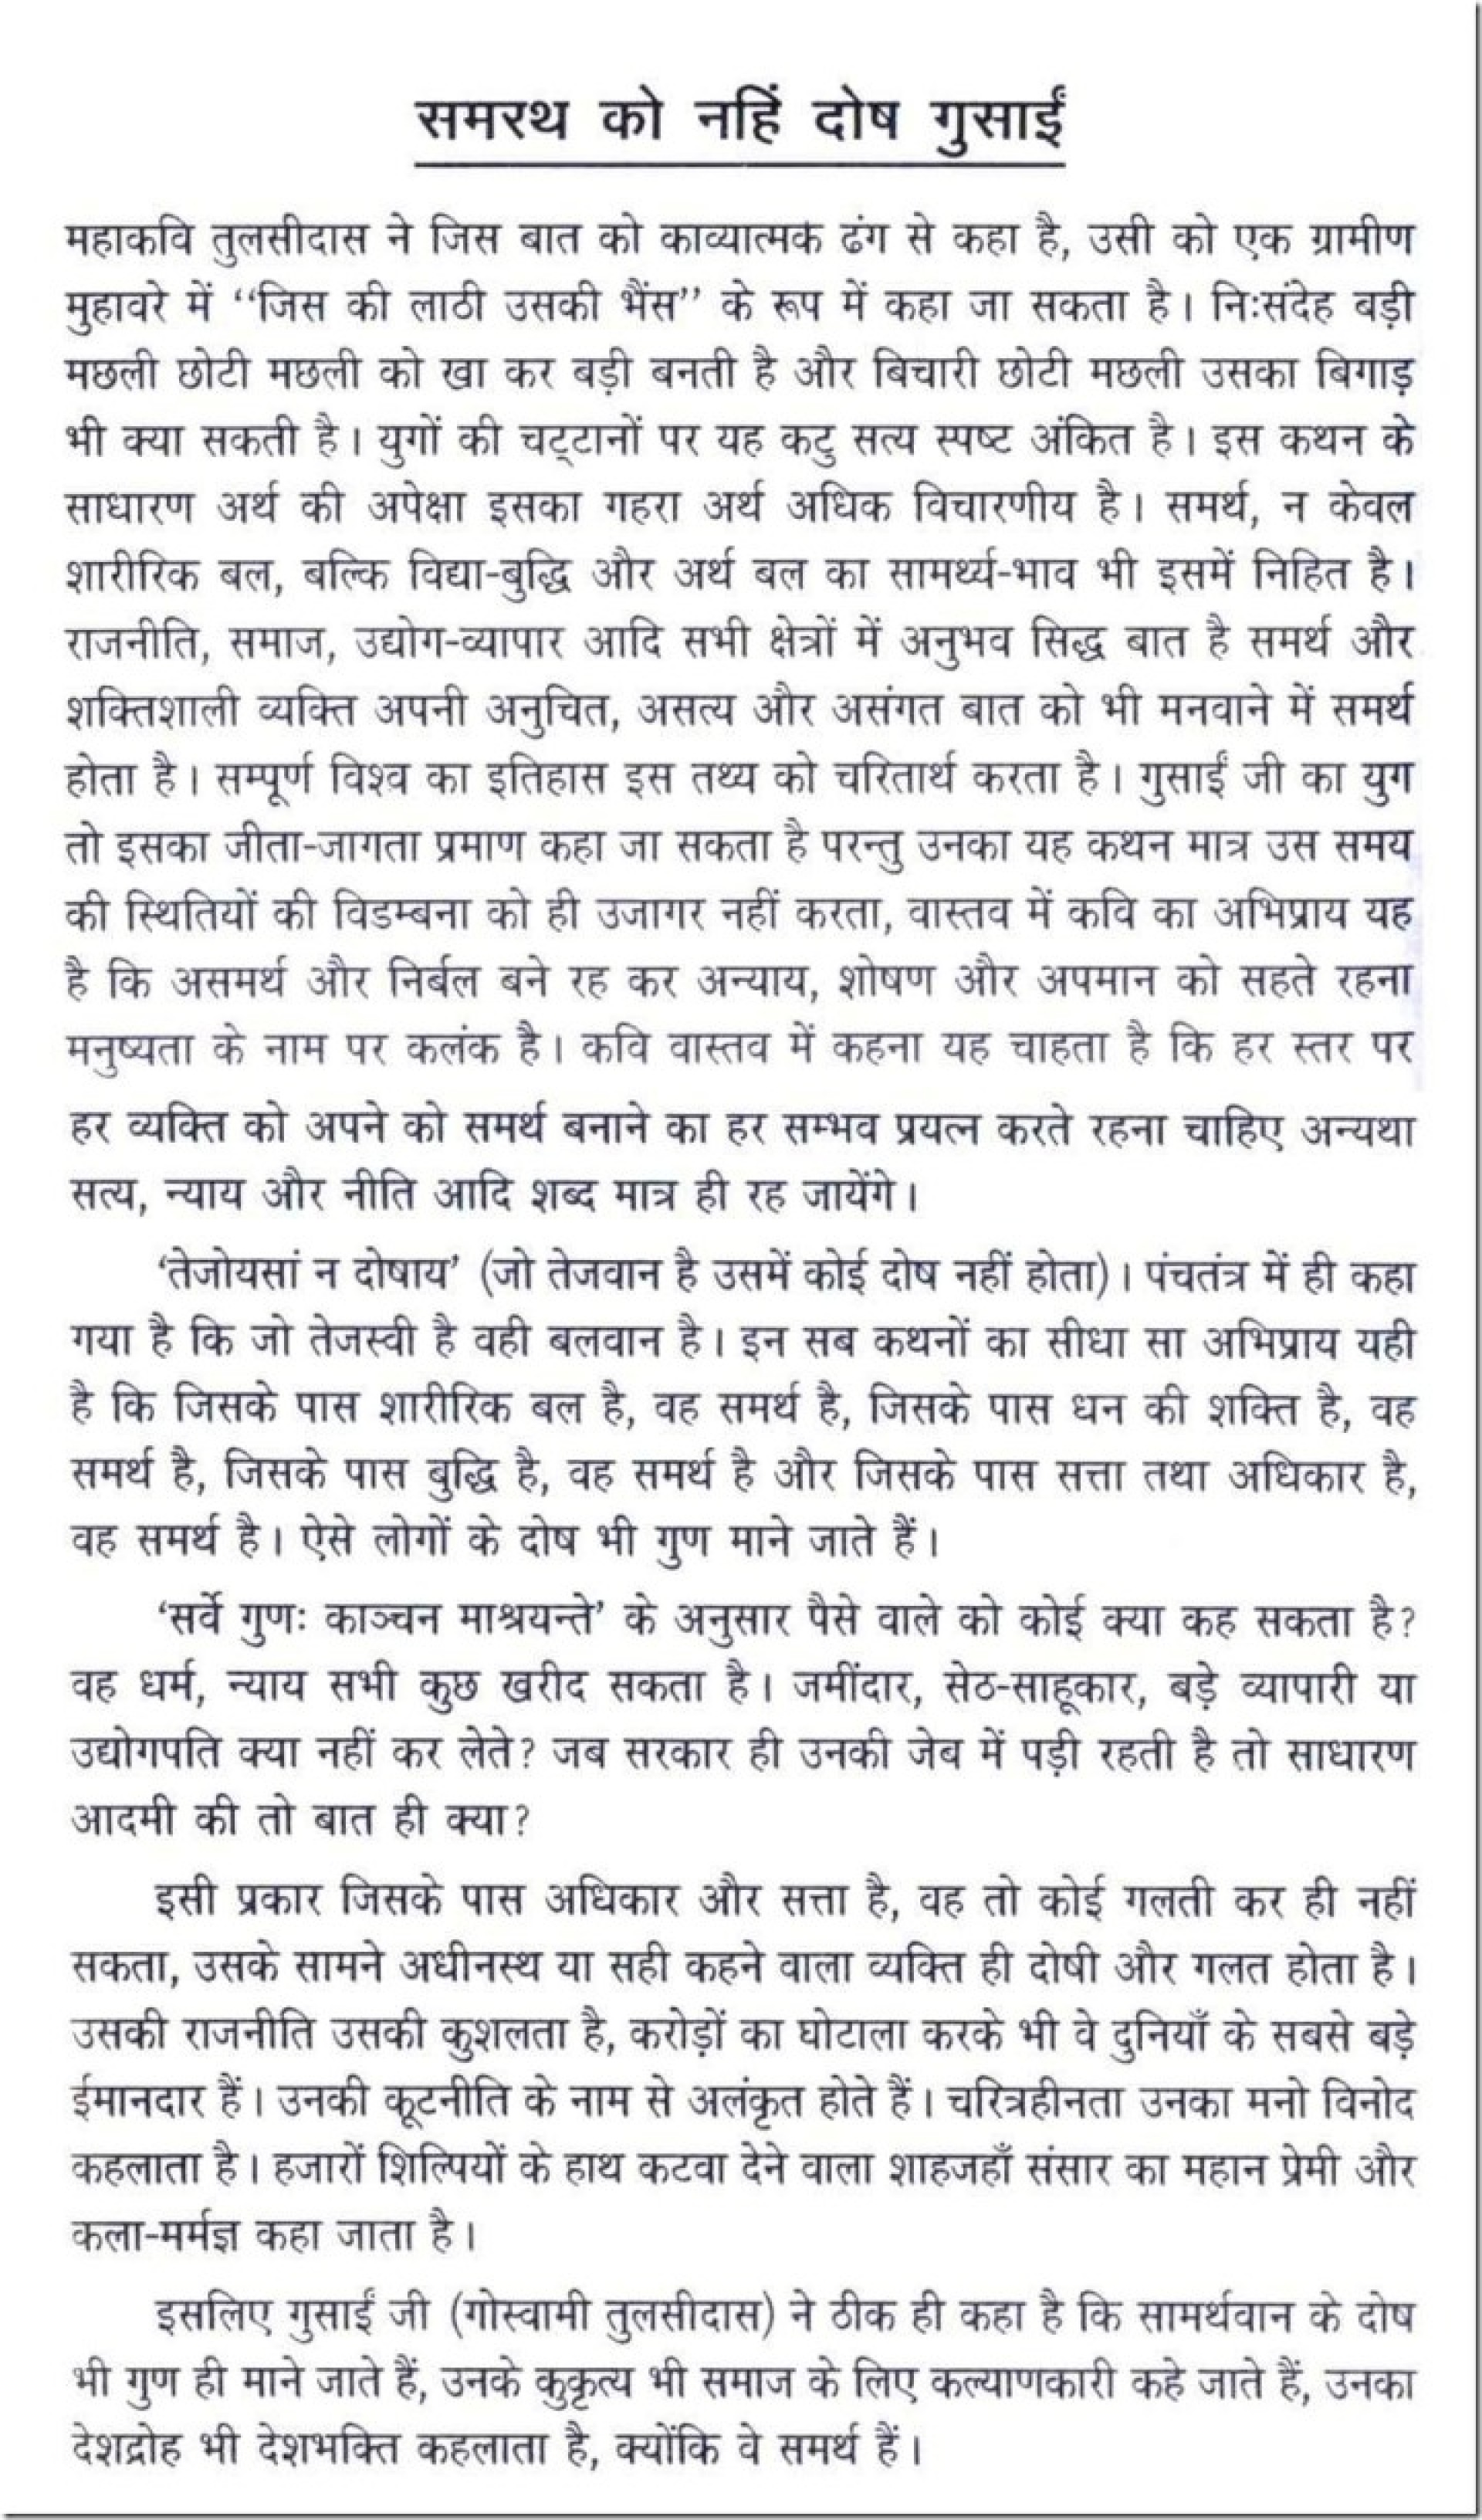 007 Good Habits Essay In Hindi Example Hh0055 Thumbresize7202c1224 Exceptional Reading Habit Wikipedia 1920